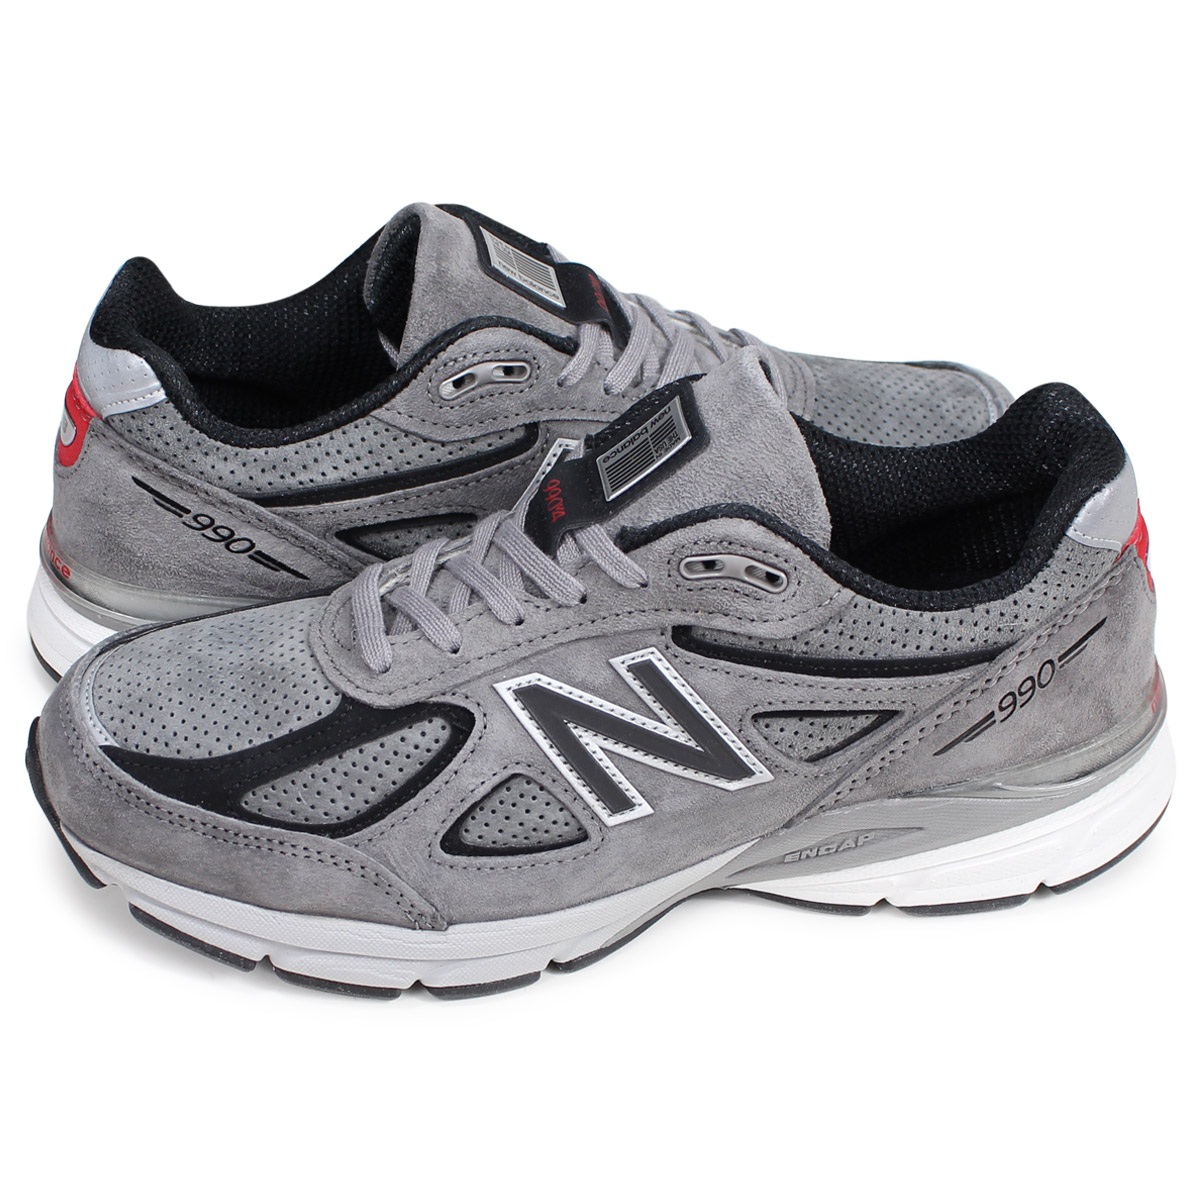 quality design c37c3 171a2 new balance M990SG4 New Balance 990 sneakers men D Wise MADE IN USA gray